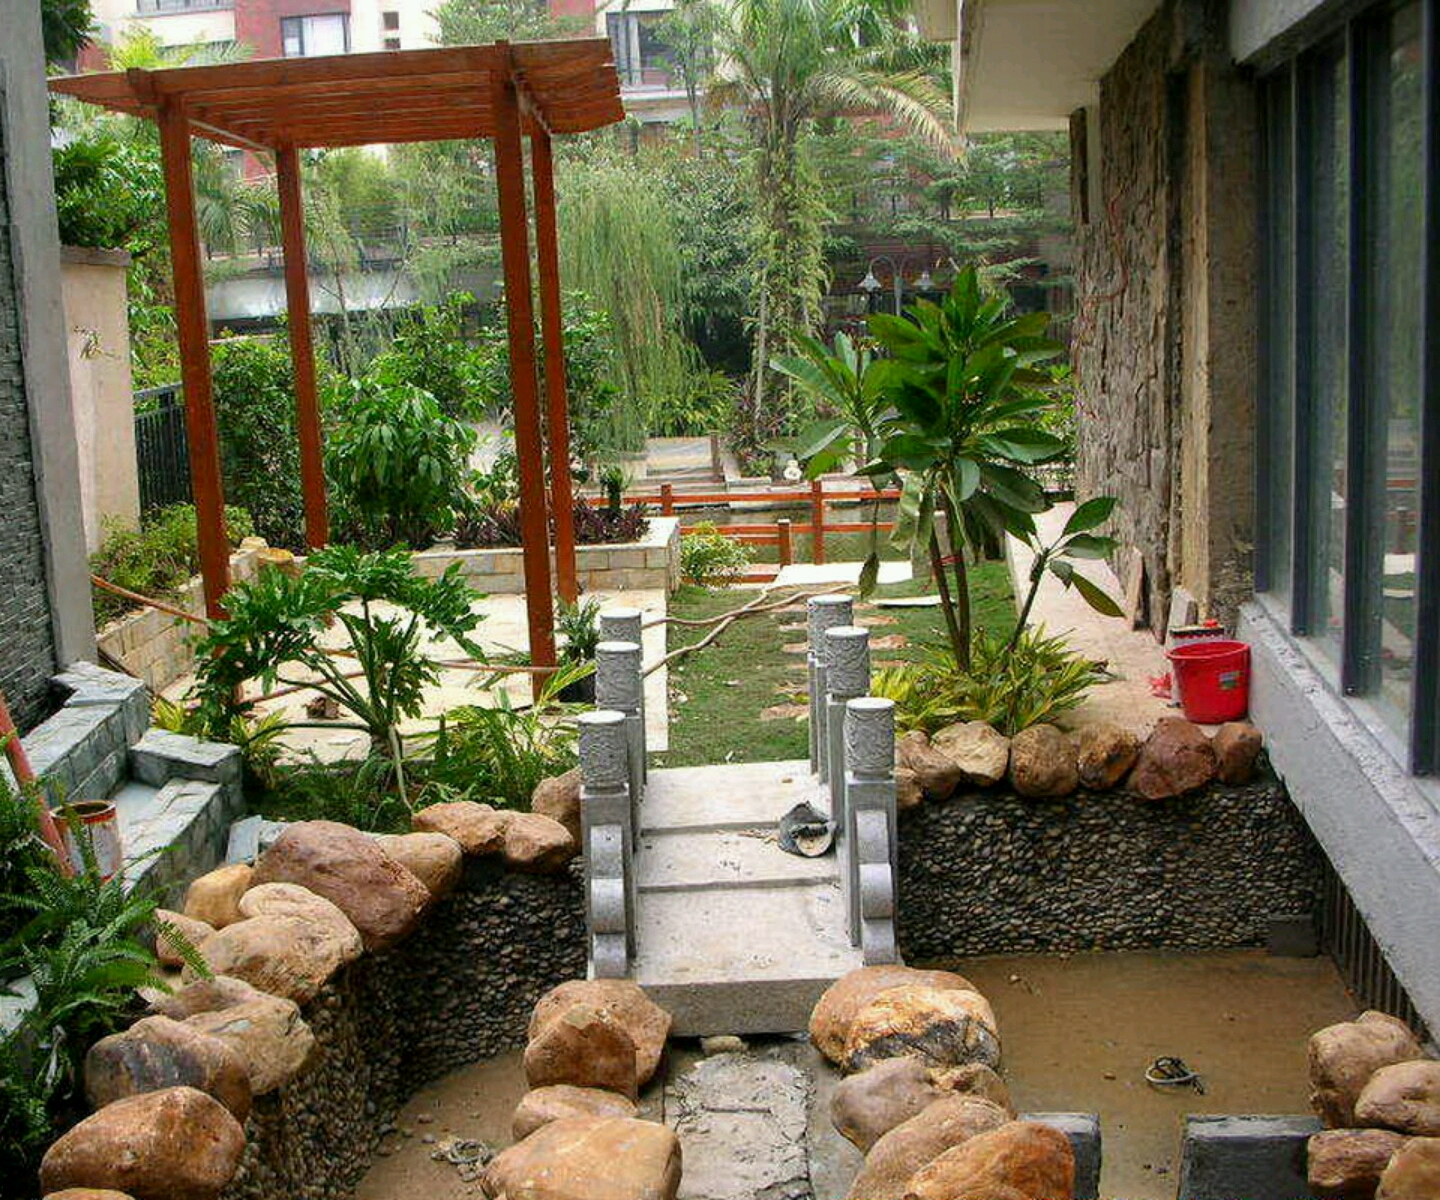 New home designs latest beautiful home gardens designs for Home garden ideas